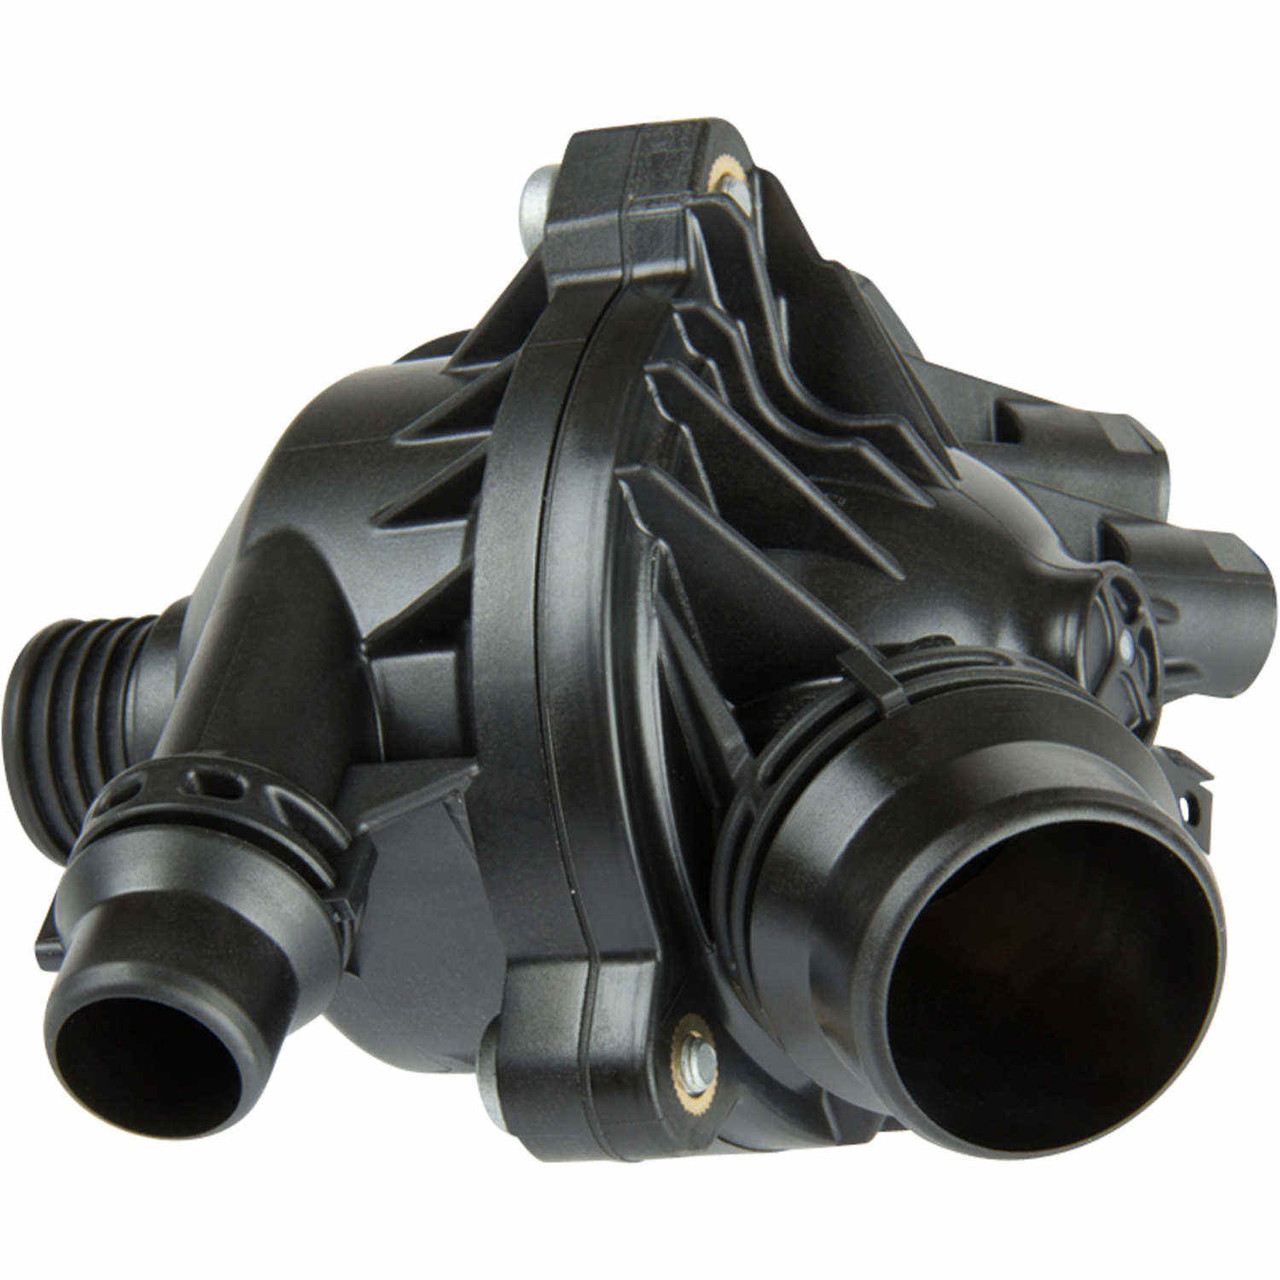 BMW Water Pump Replacement Kit - VDO 11517632426KT